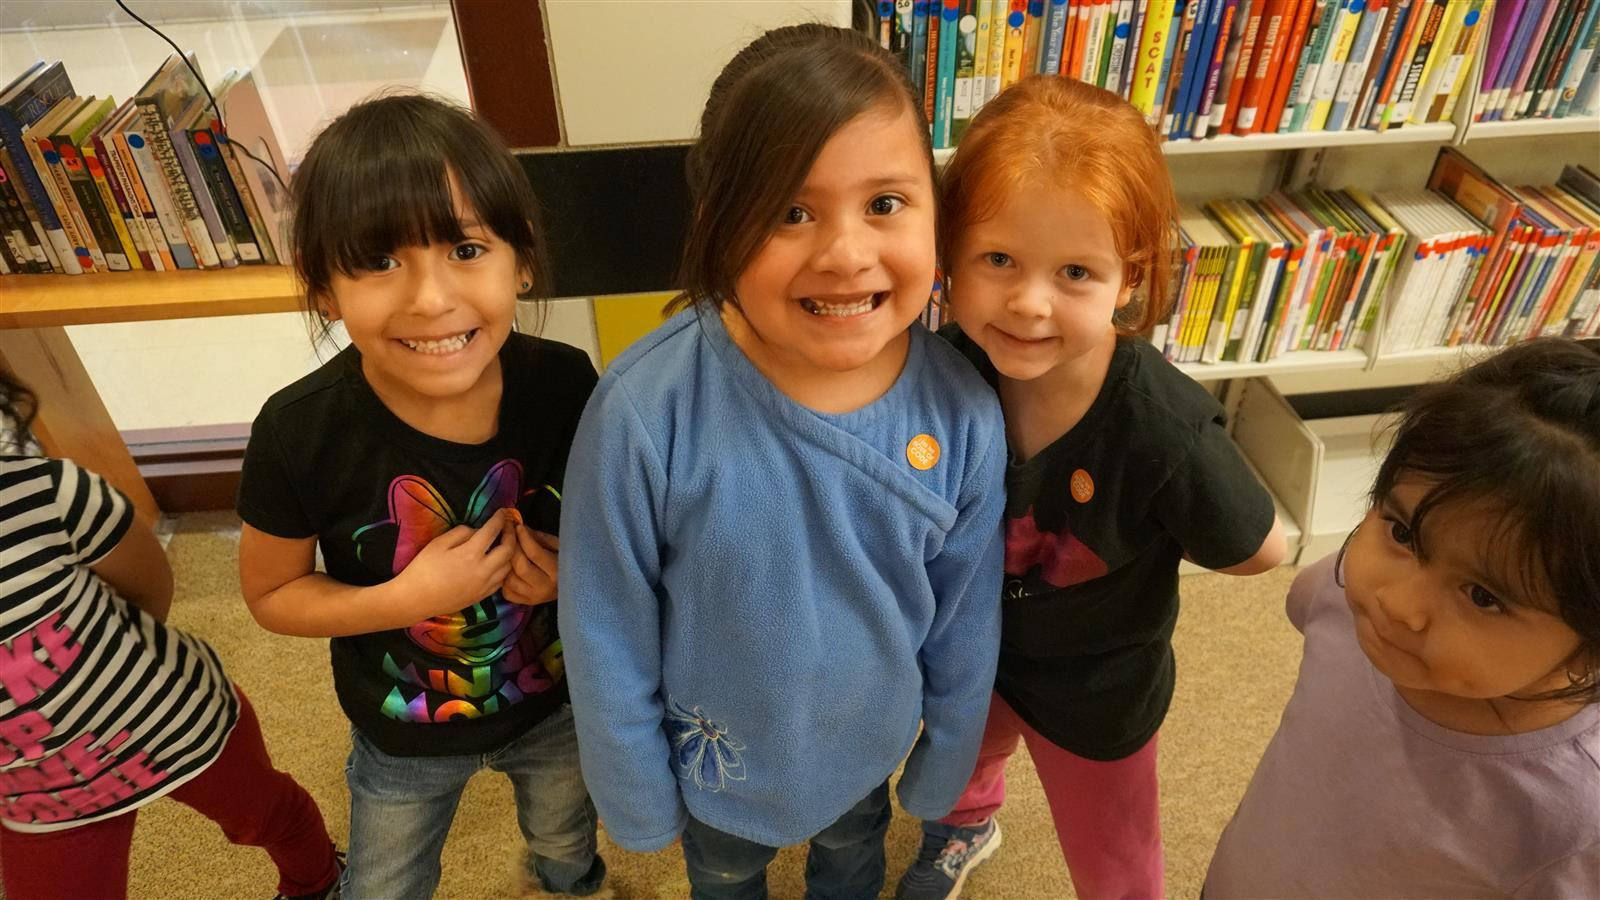 Three students smiling at the camera during the Hour of Code event at their school